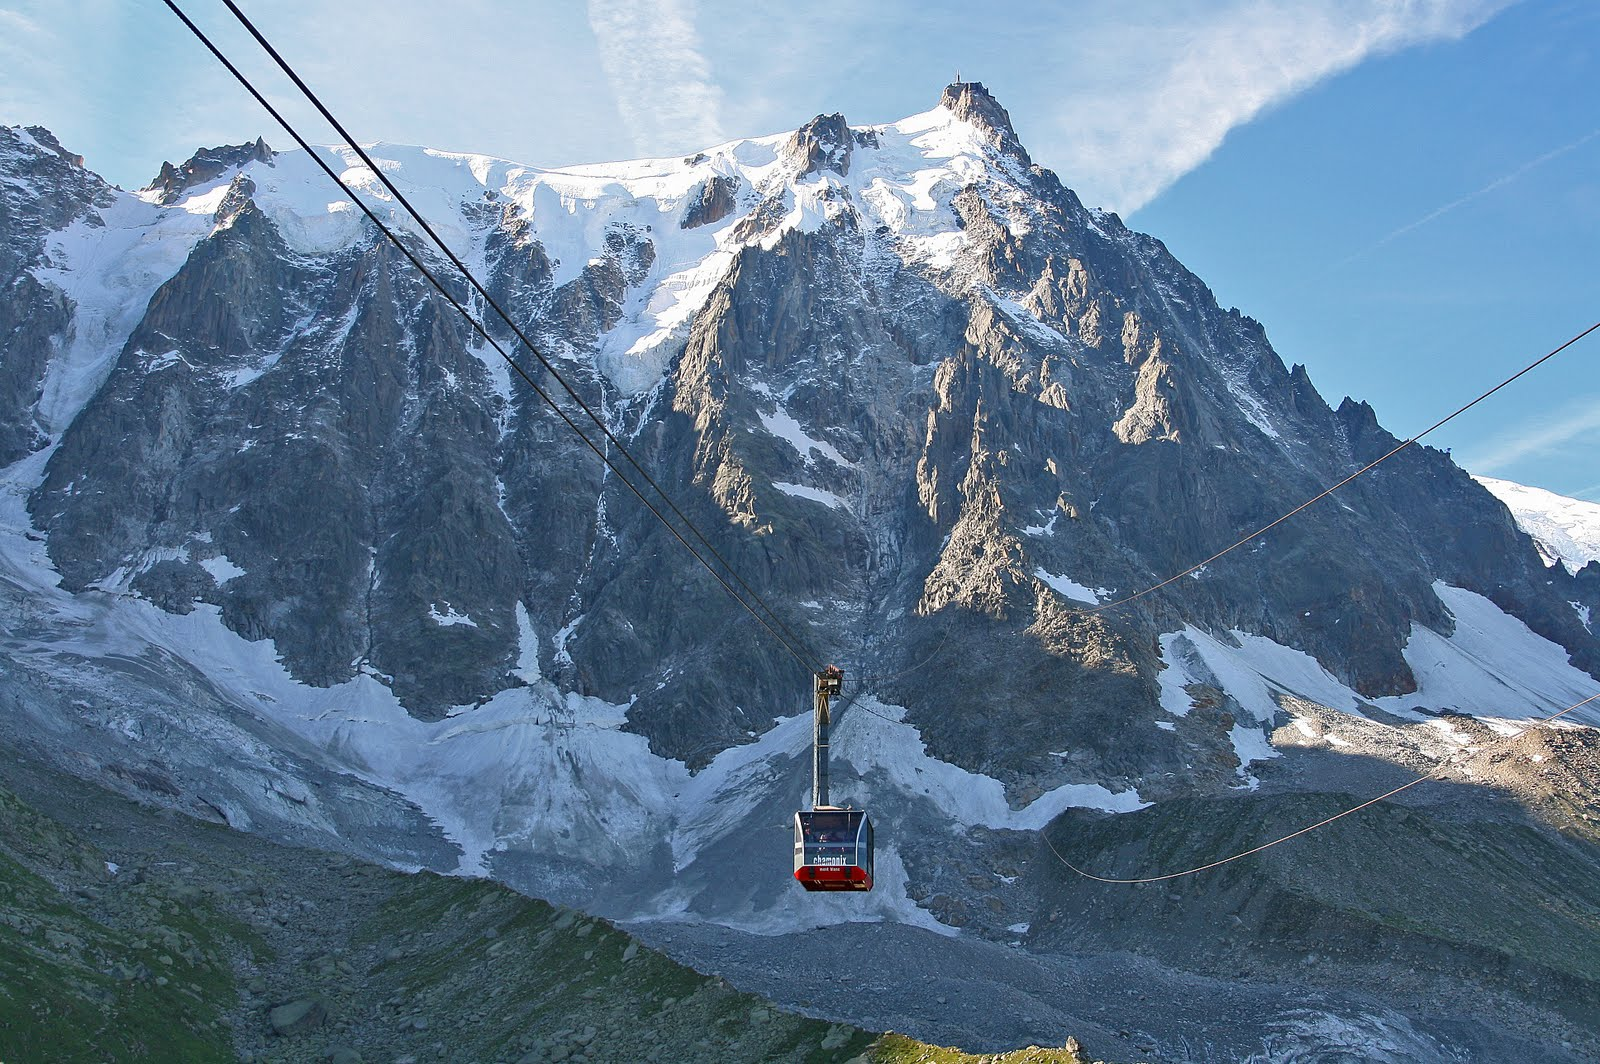 Aiguille-du-Midi-cable-car-photo-199countries-2.jpg